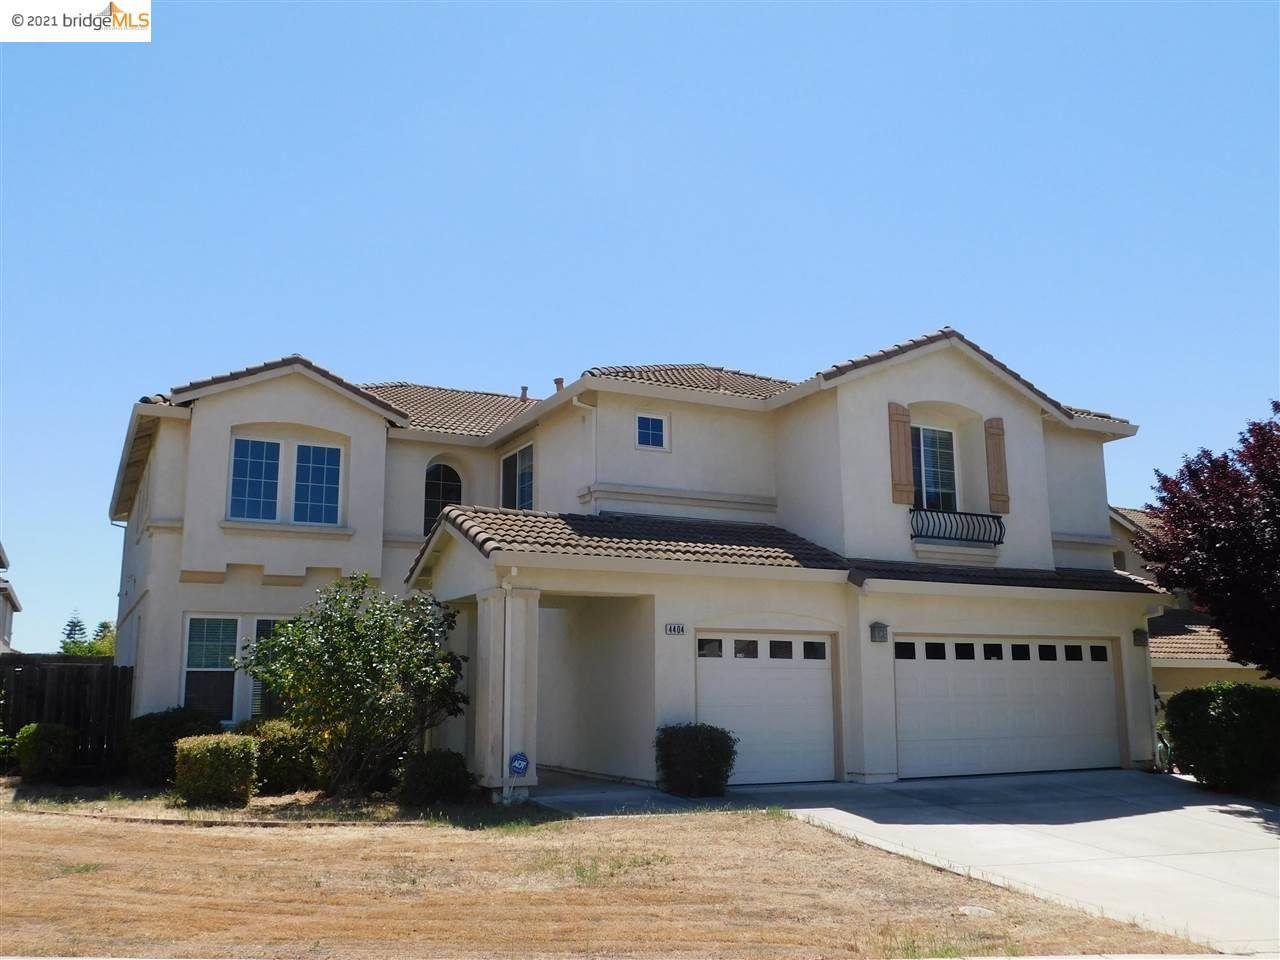 4404 Rocky Point Dr, Antioch, California 94531, 6 Bedrooms Bedrooms, ,5 BathroomsBathrooms,Single Family,For Sale,4404 Rocky Point Dr,2,40948727